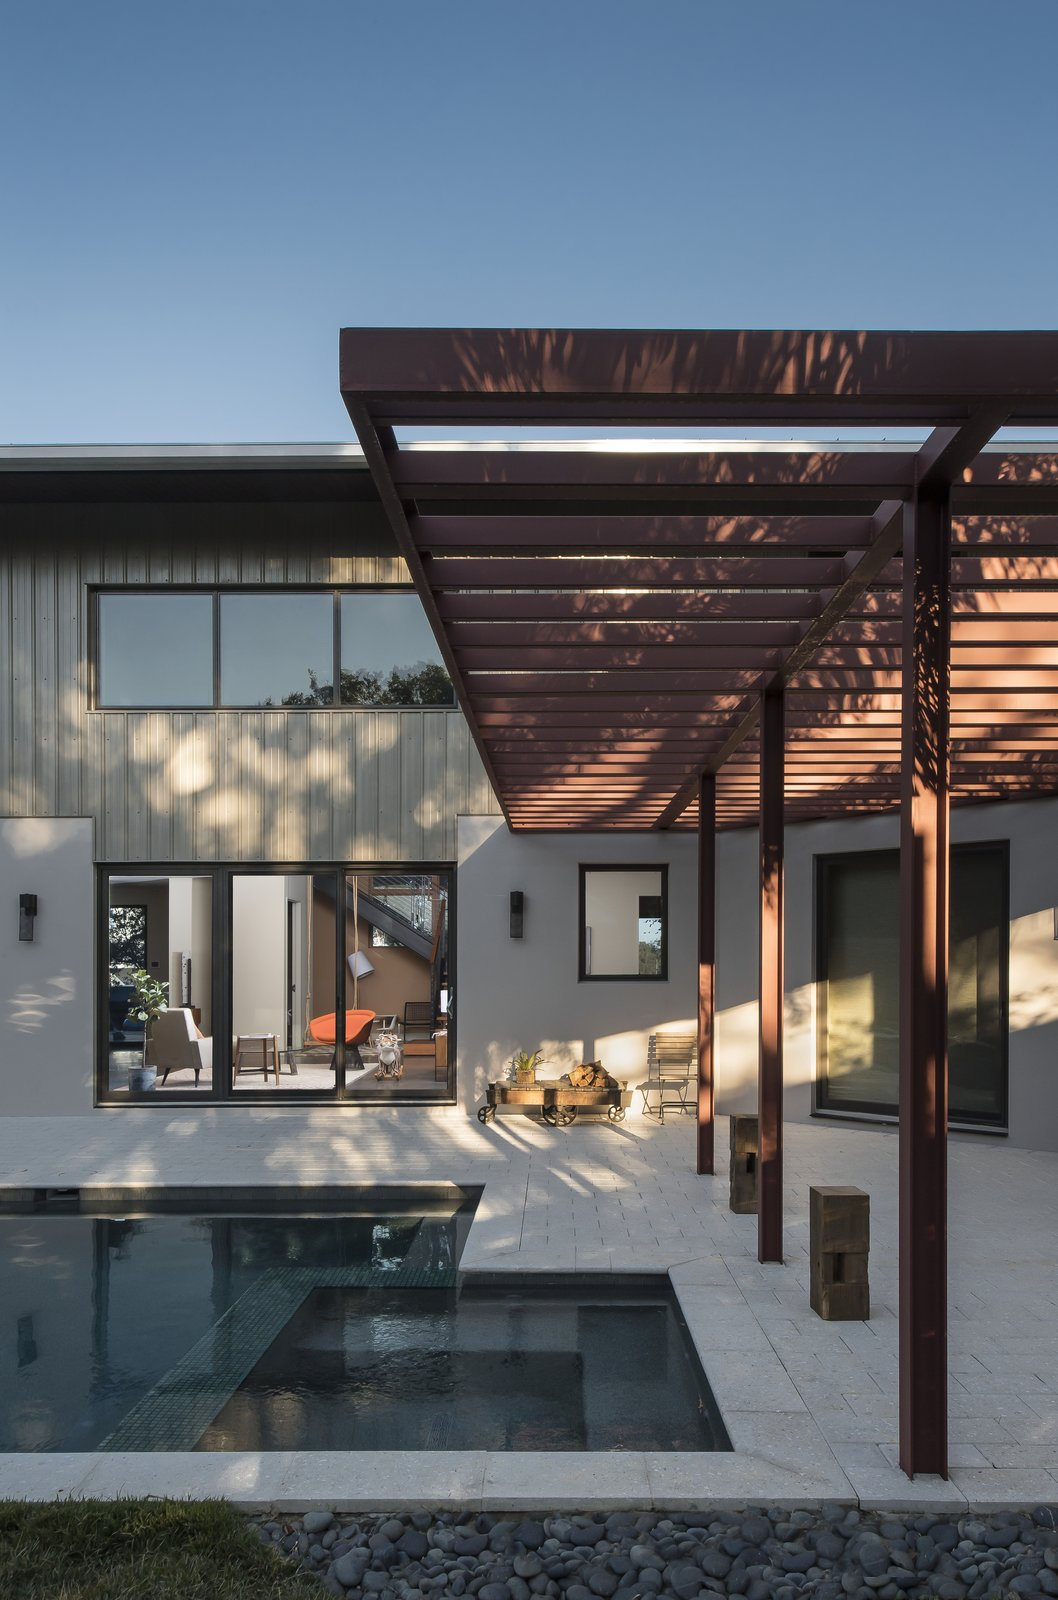 Exterior The sun-shade beside the pool plays with the horizontal and vertical repetition of the exposed beams that are not only the heart of the home's construction but also its design.  1600 Lakeside